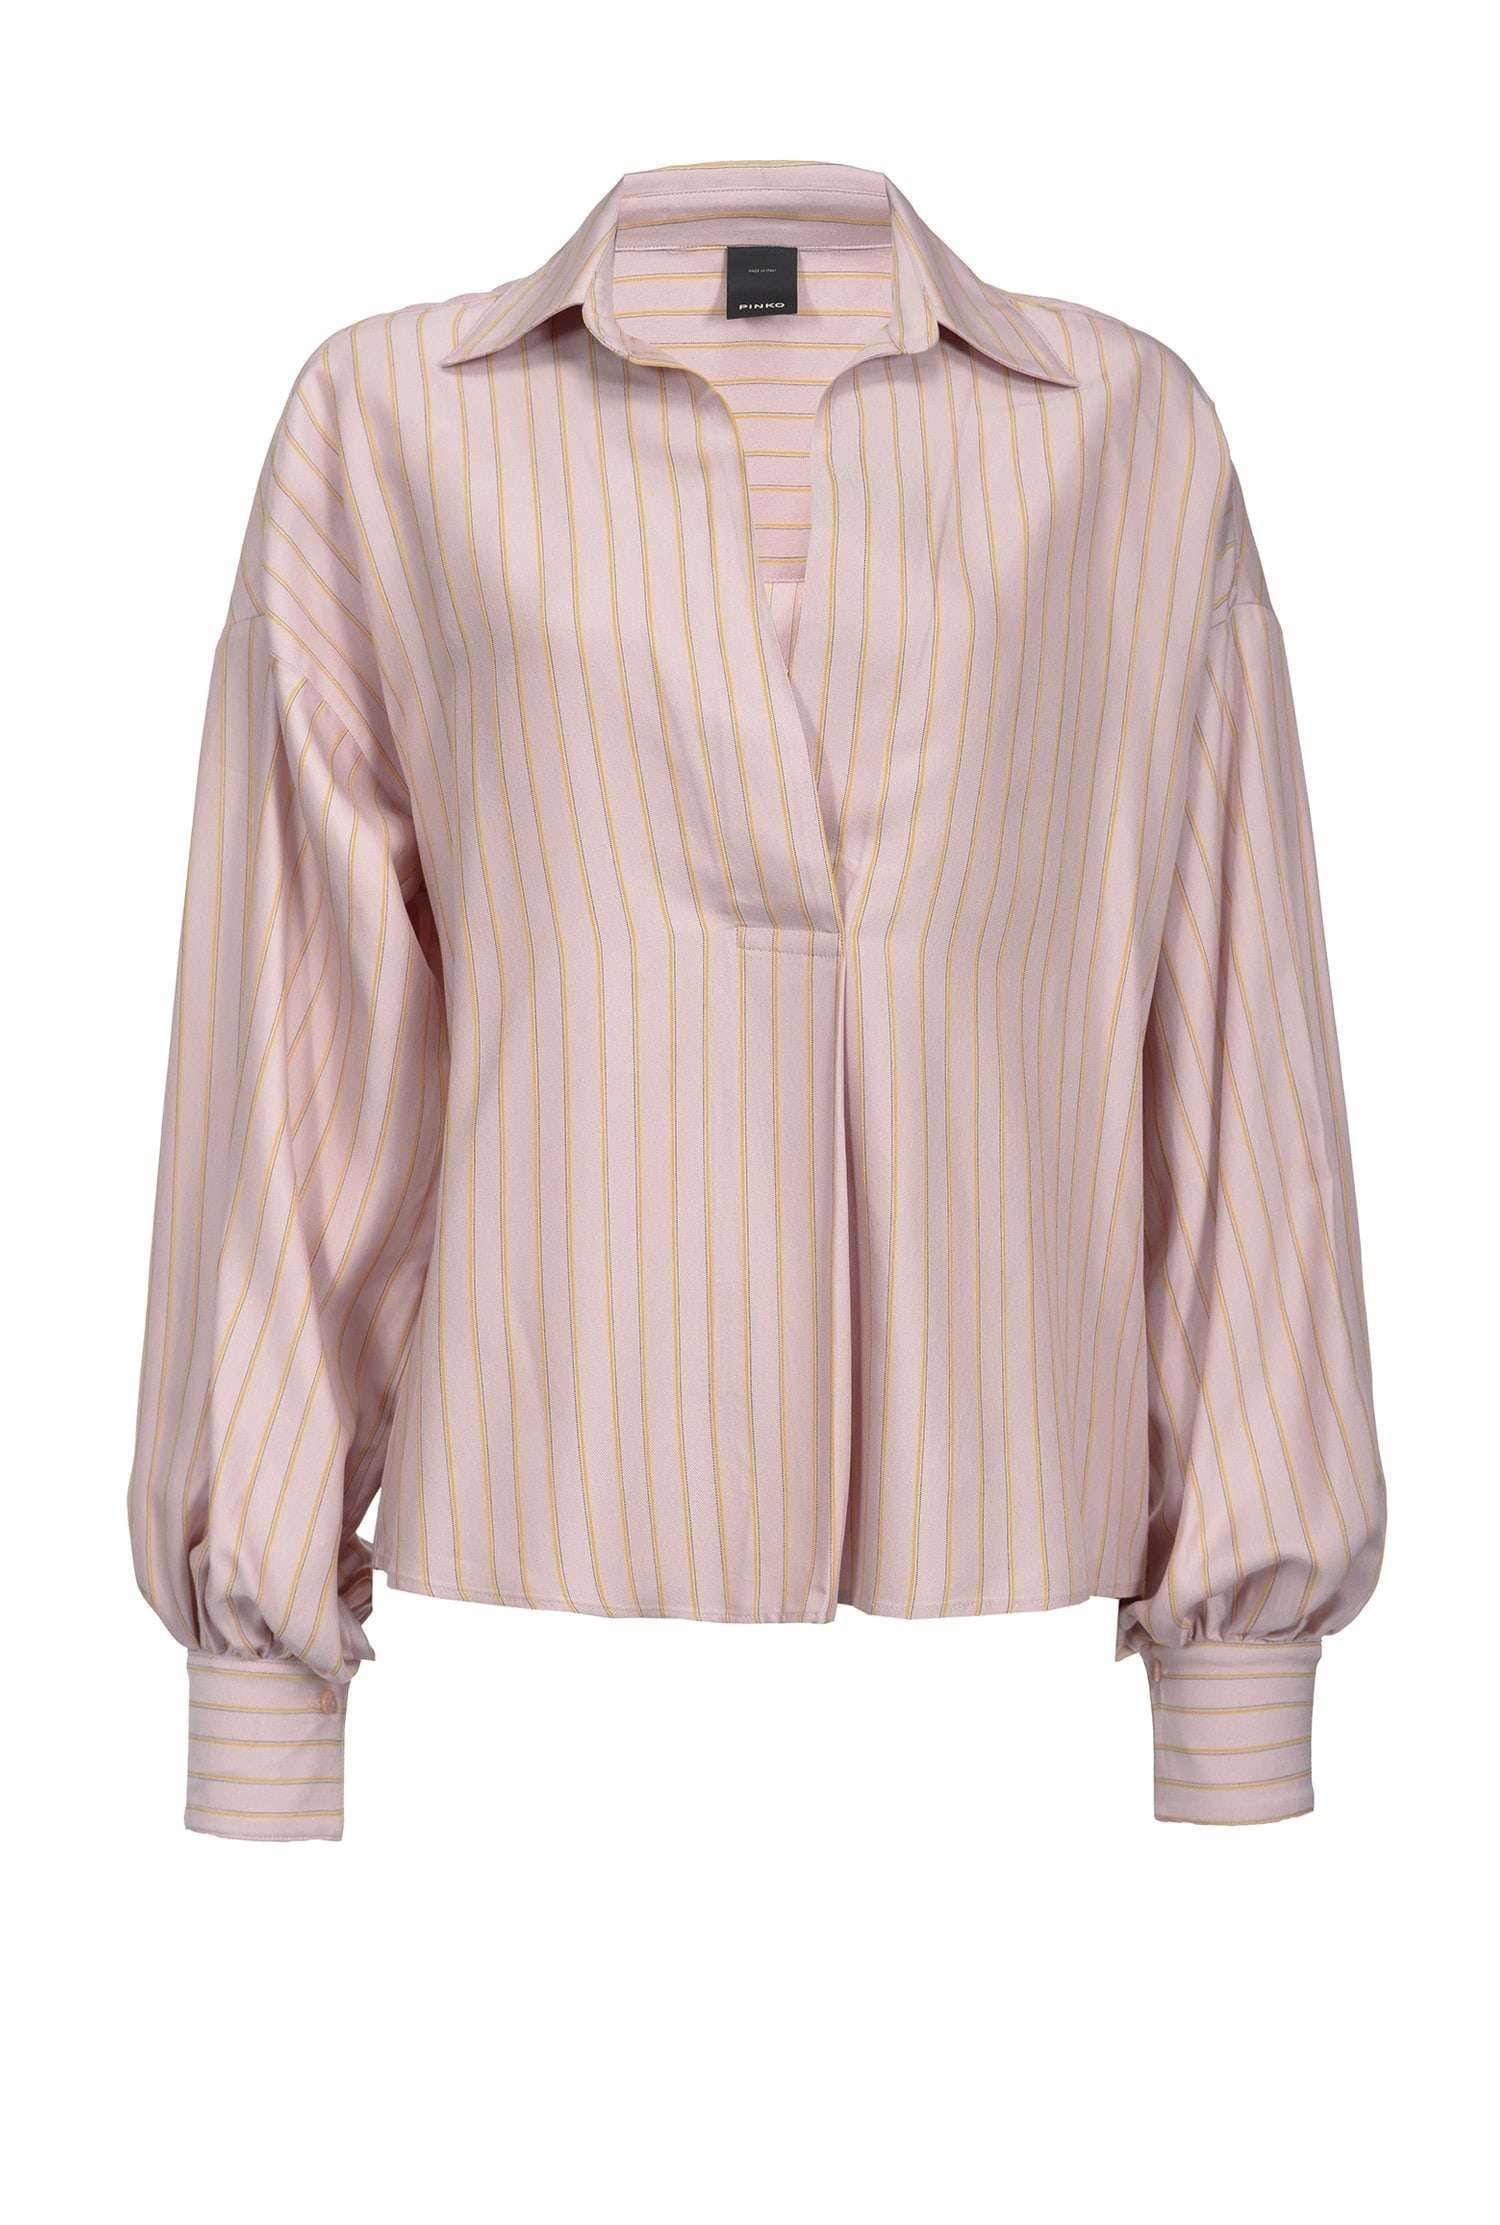 SHOPPING ON LINE PINKO BLUSA IN TWILL RIGATO FRITTURA NEW COLLECTION WOMEN'S SPRING SUMMER 2020